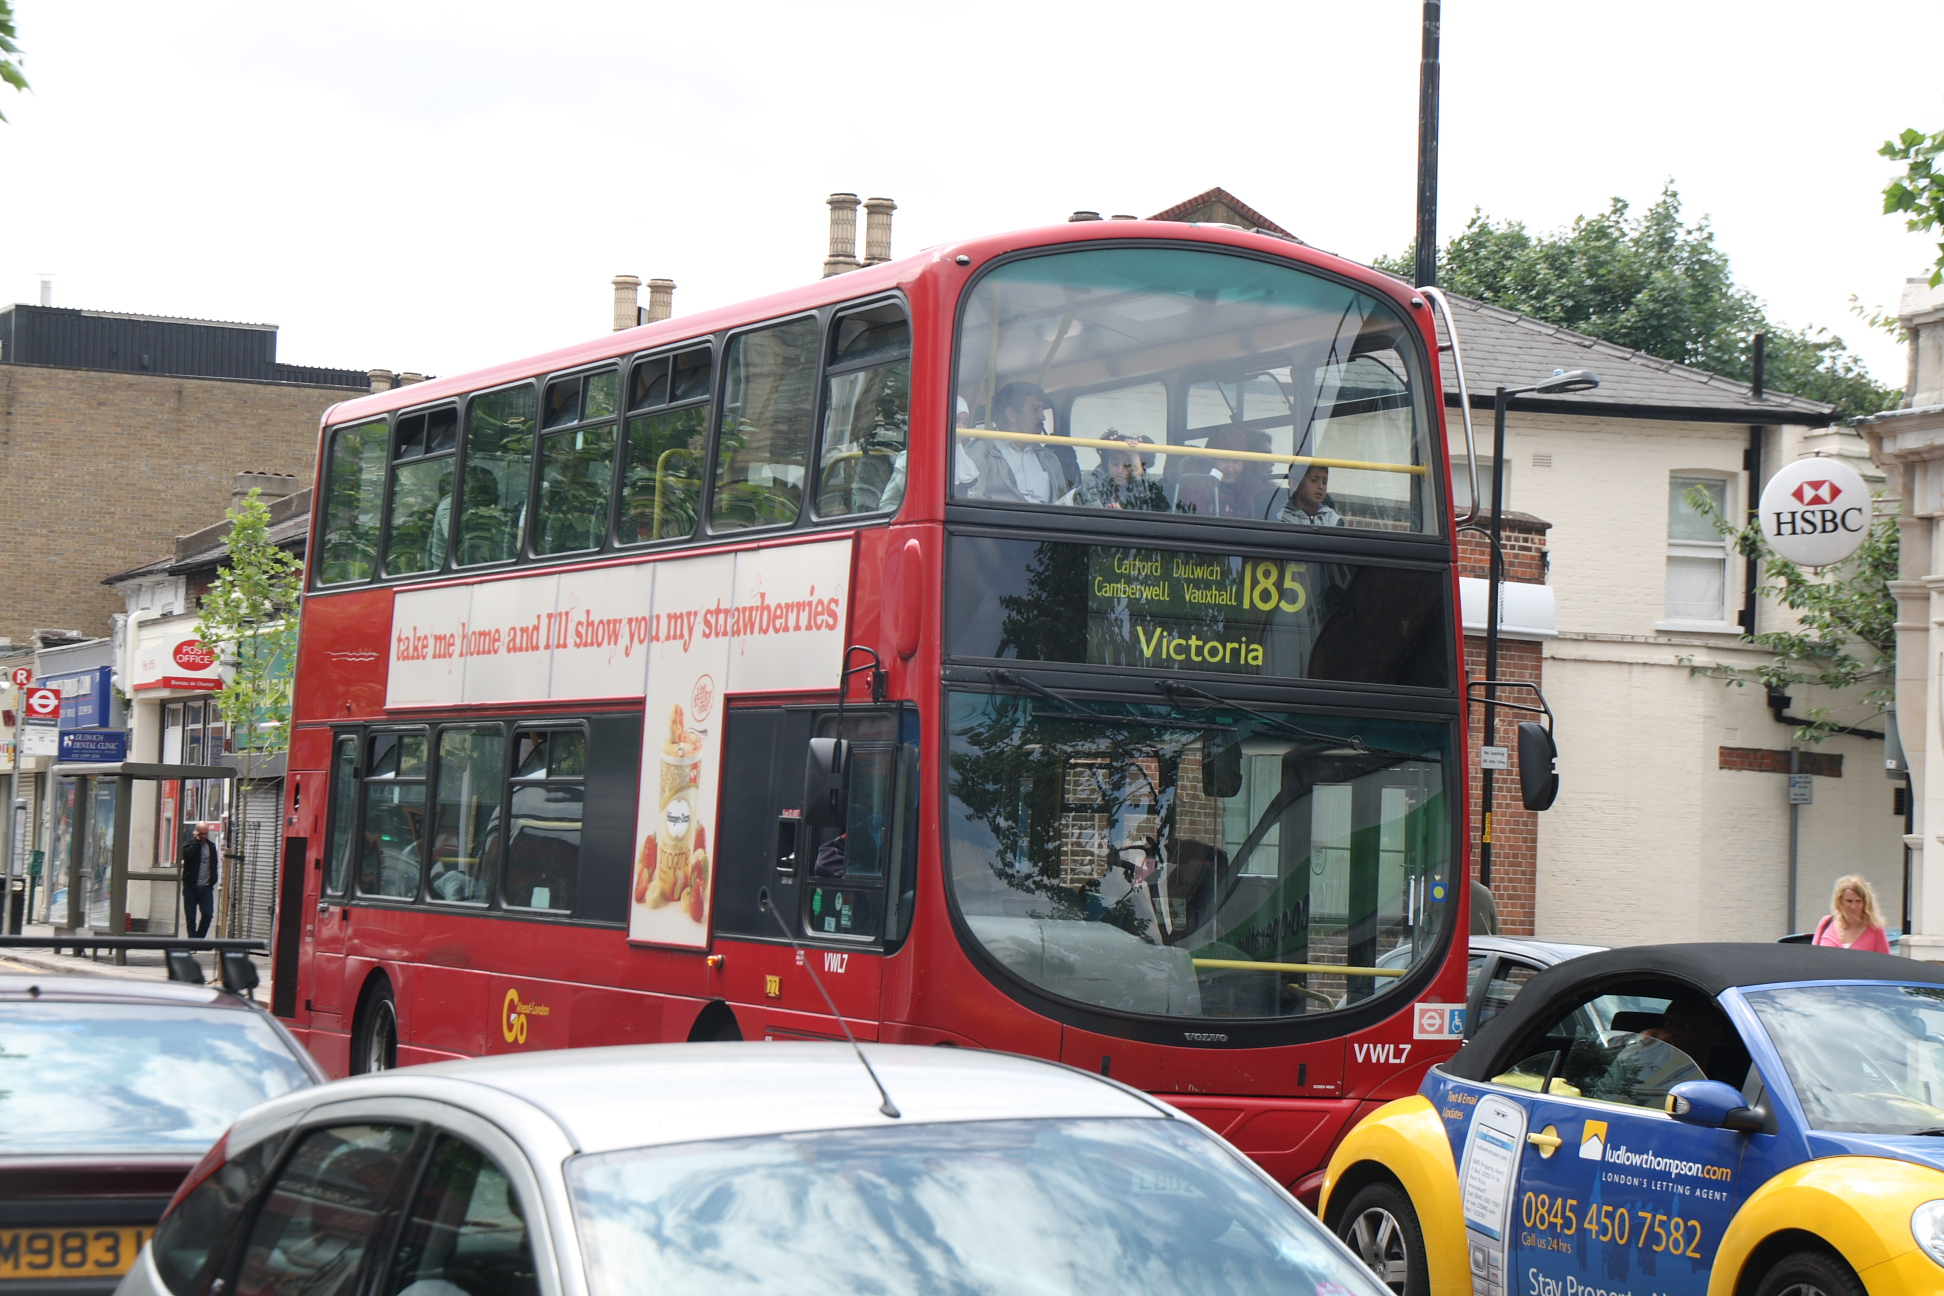 London Bus route 185.jpg